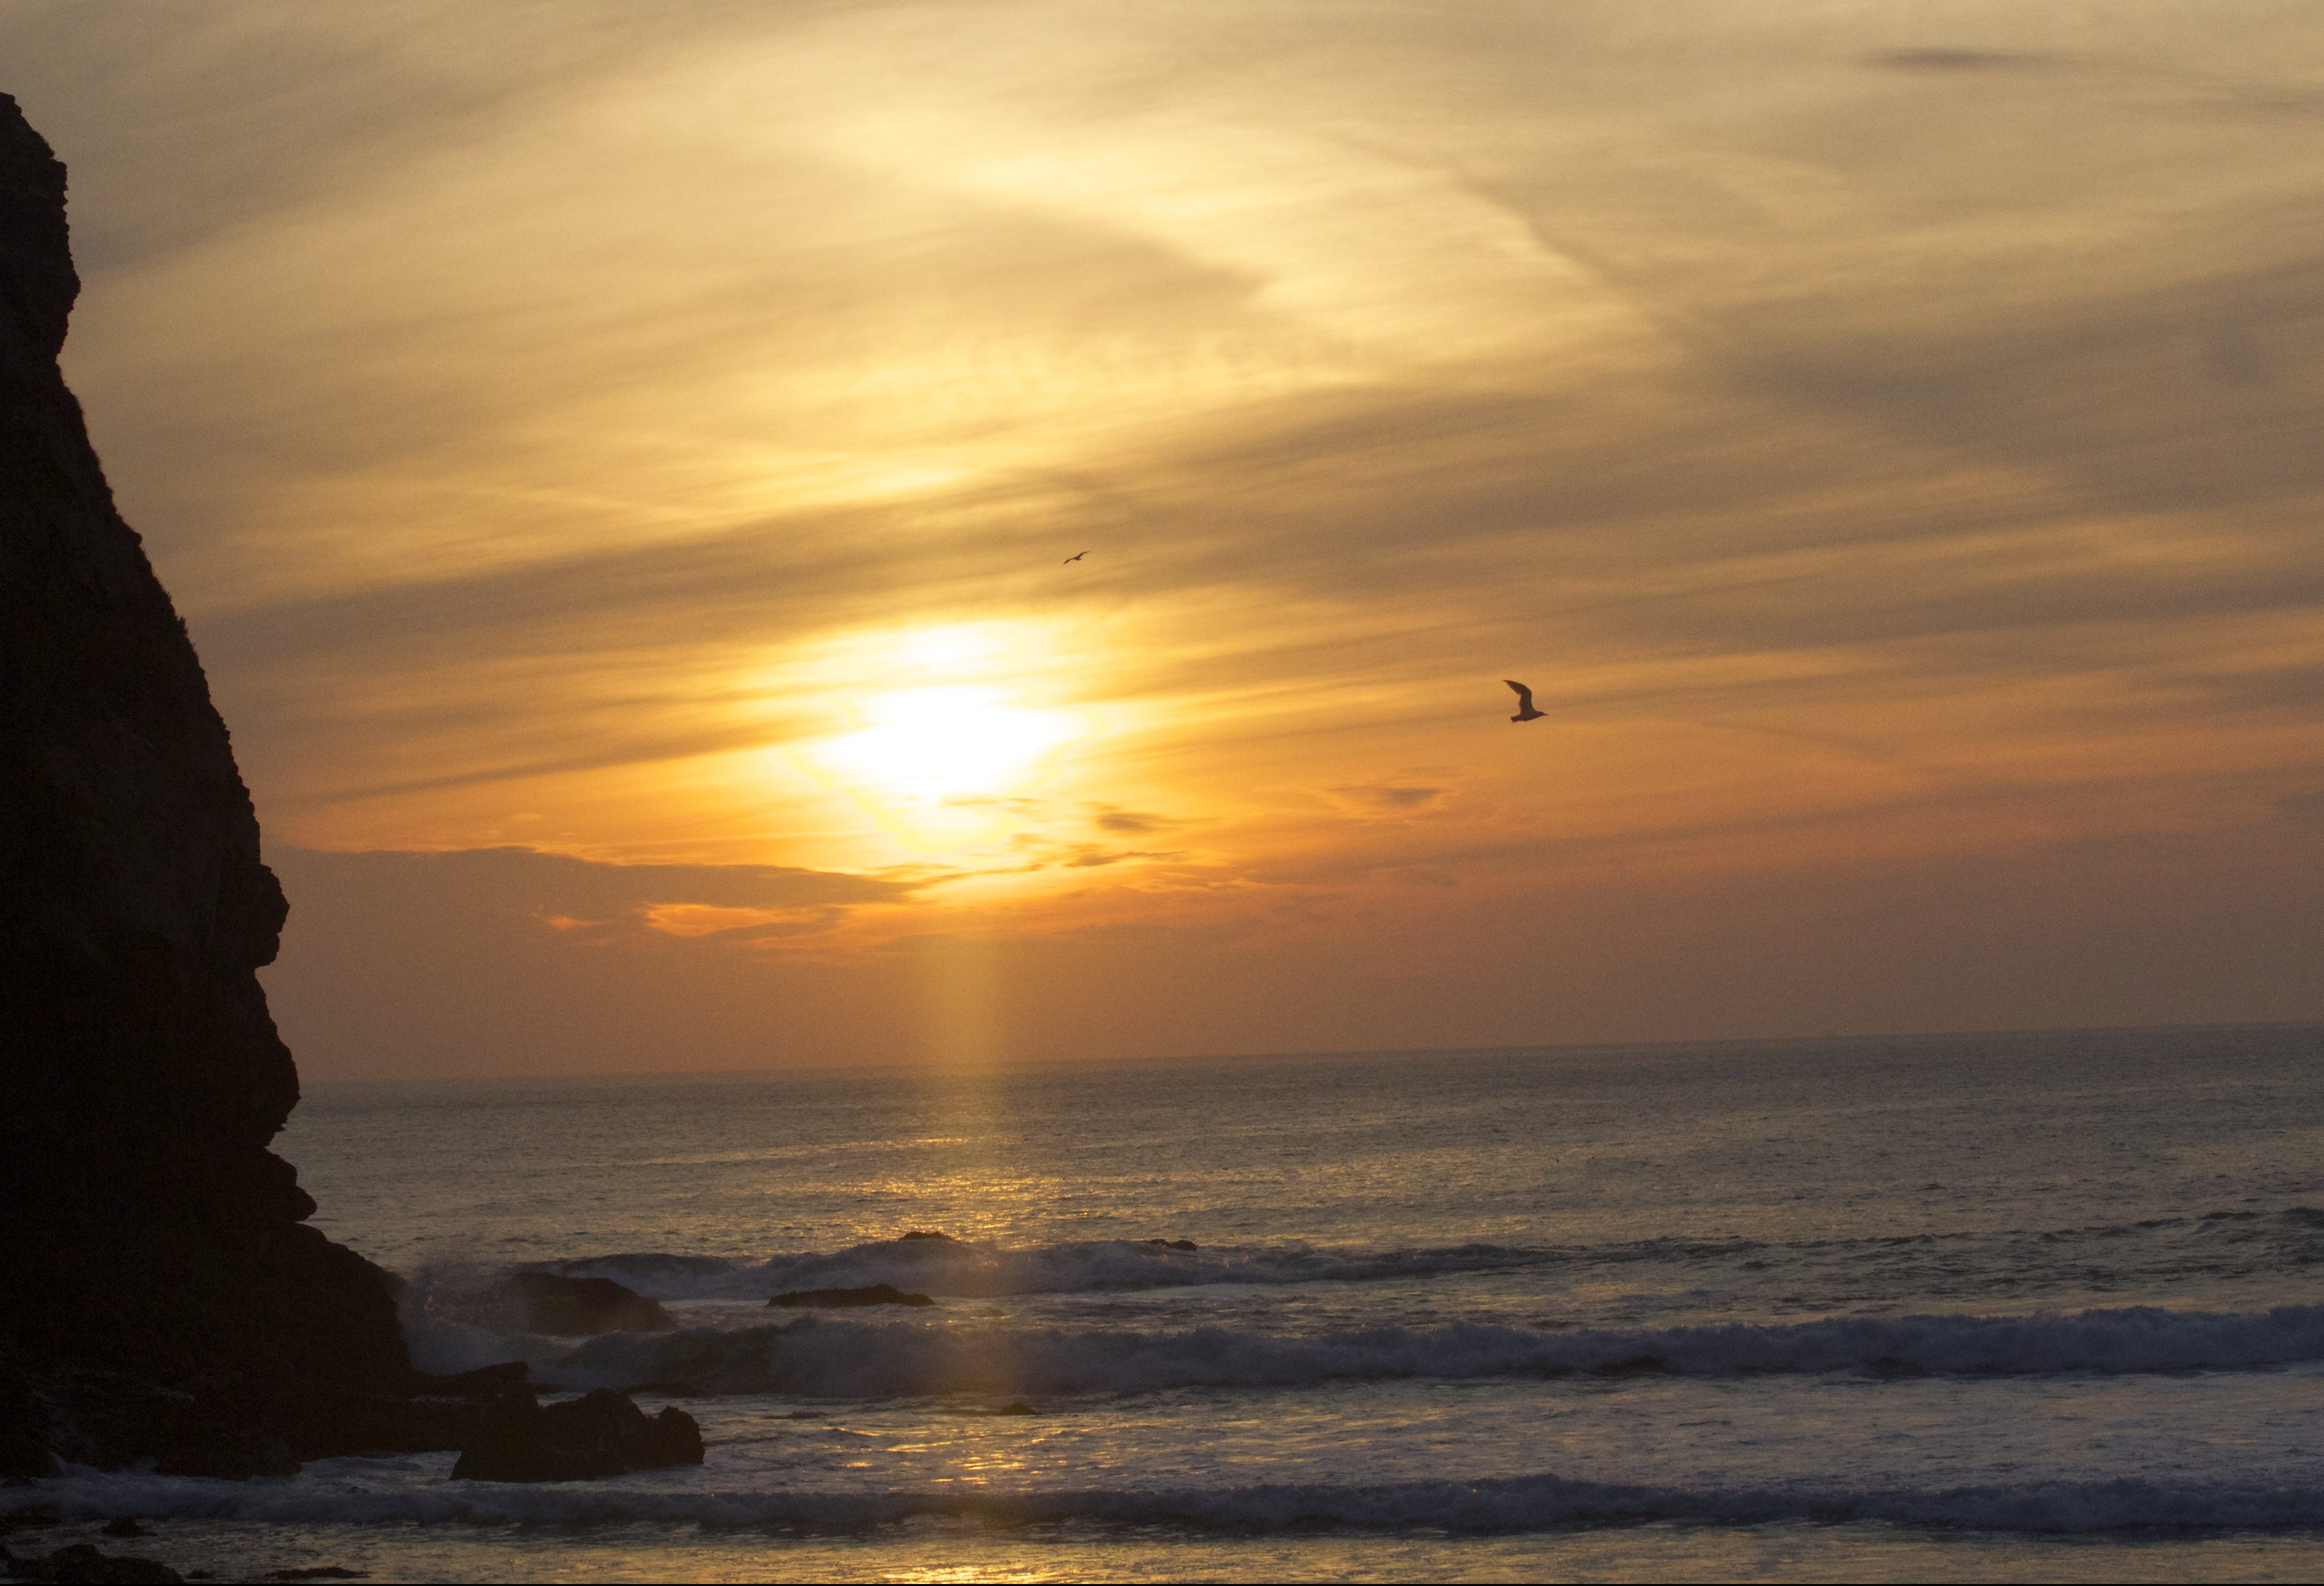 Beautiful sunset at Fistral beach, with the surf lashing the shores and the silhouette of a seagull flying by. A perfect beach break in Newquay, Cornwall.